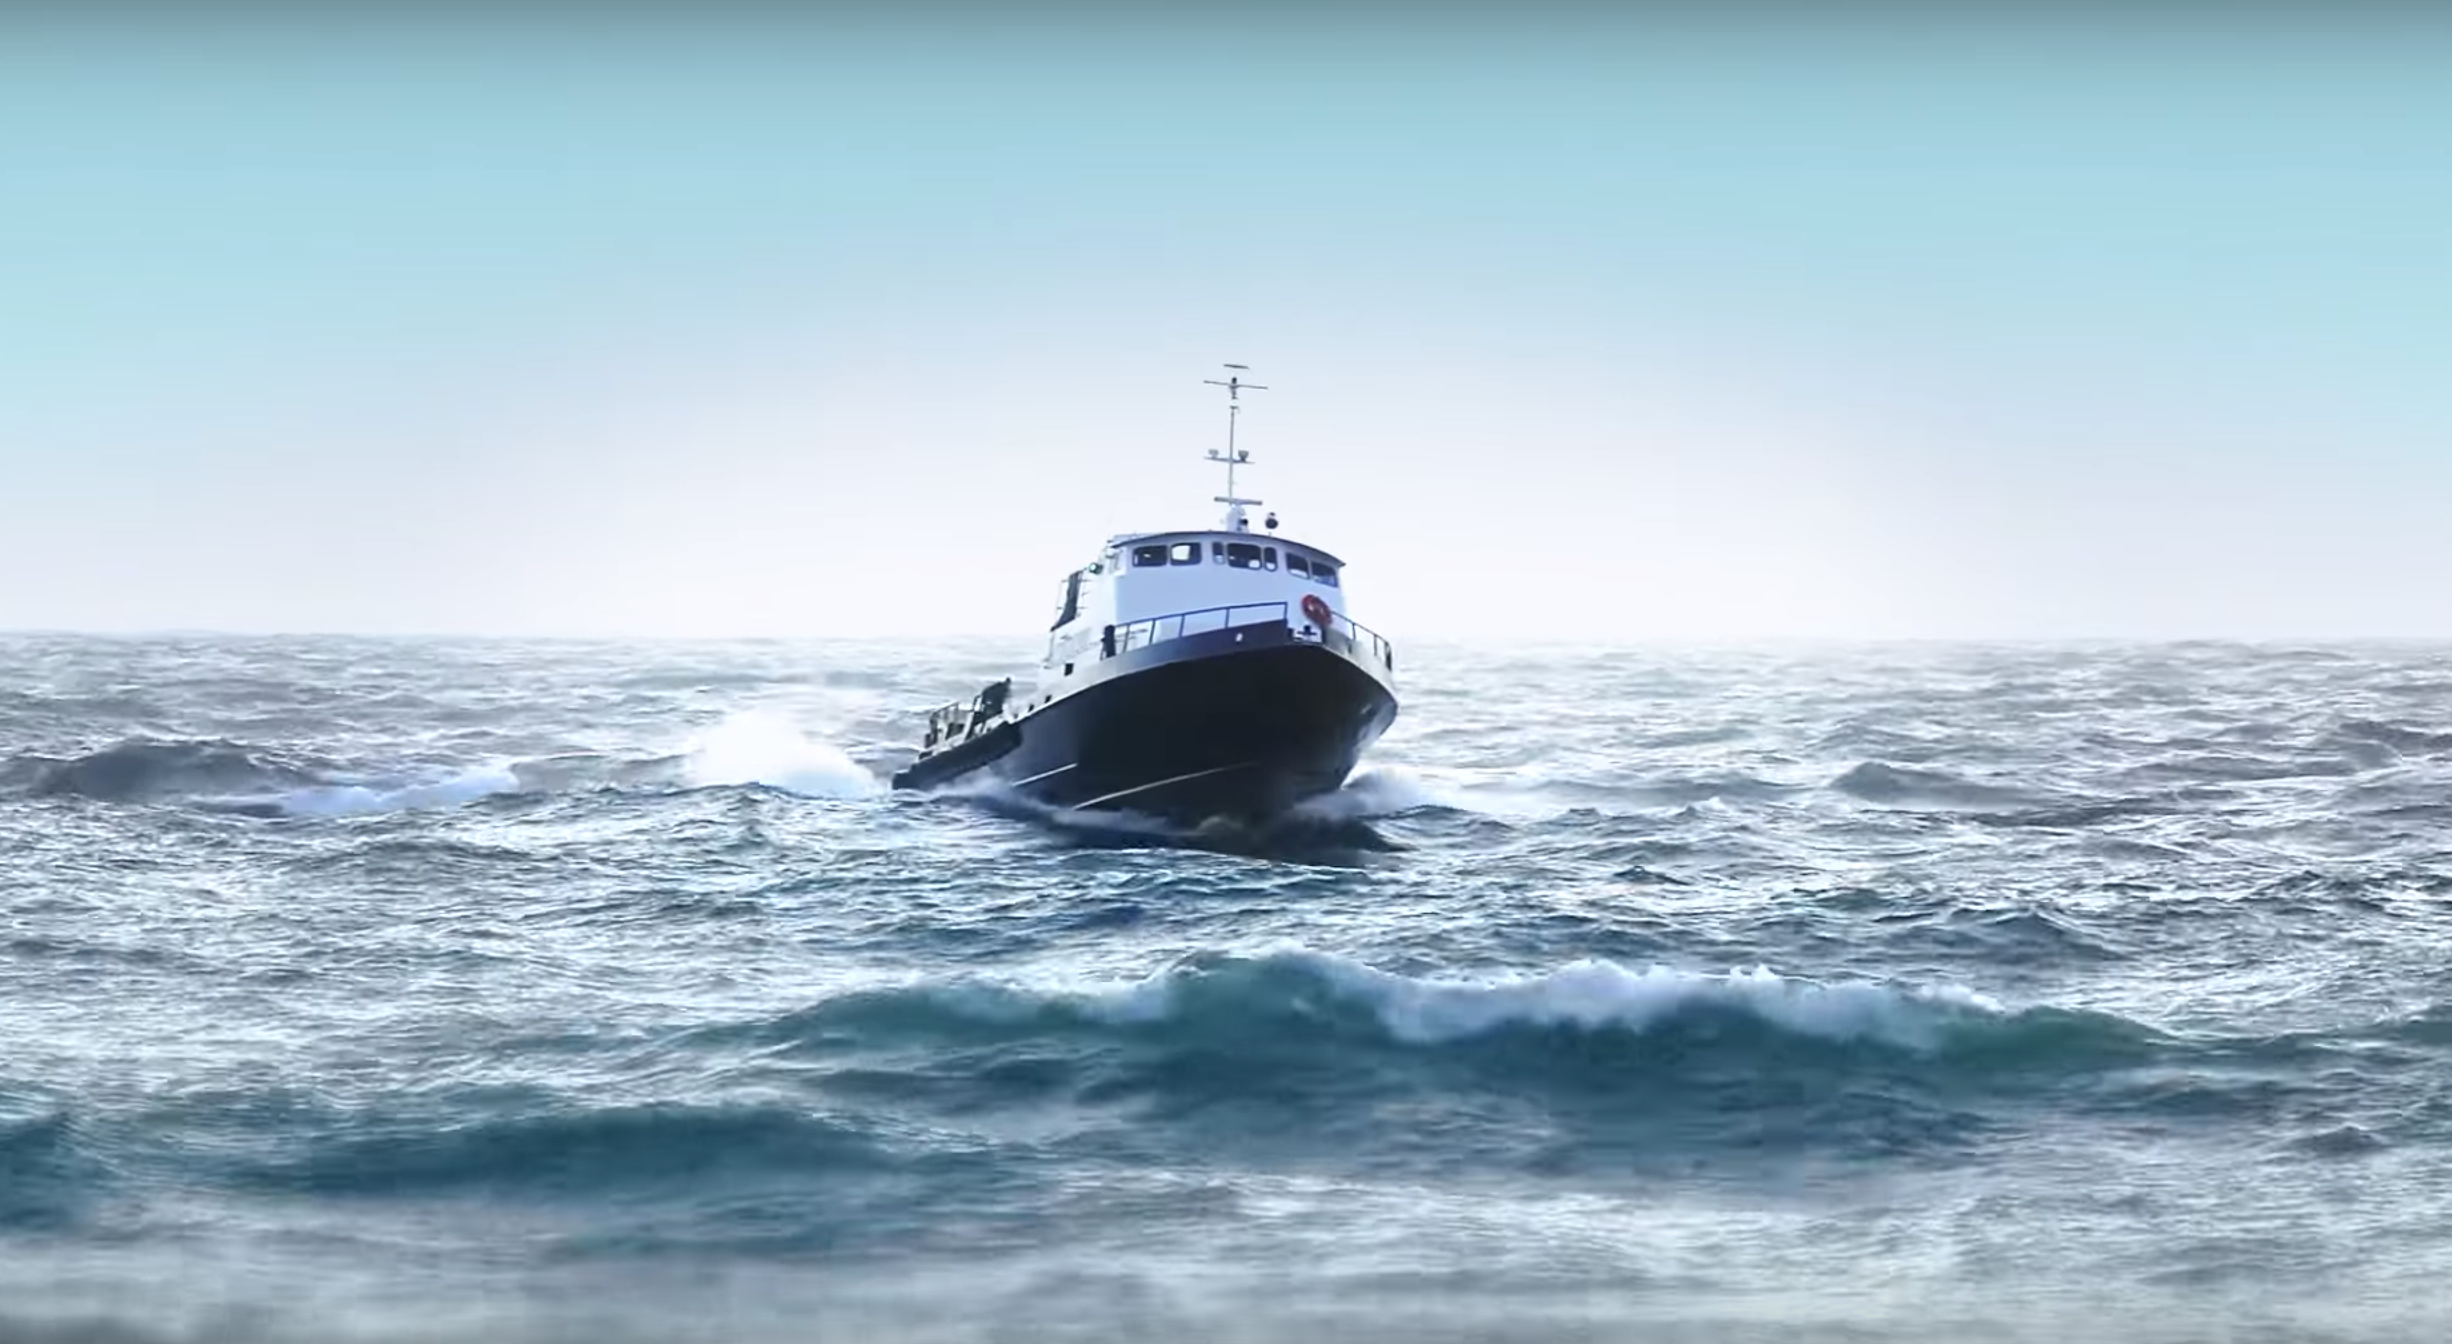 MAN Energy protects ships at sea with Zscaler's 'black cloud